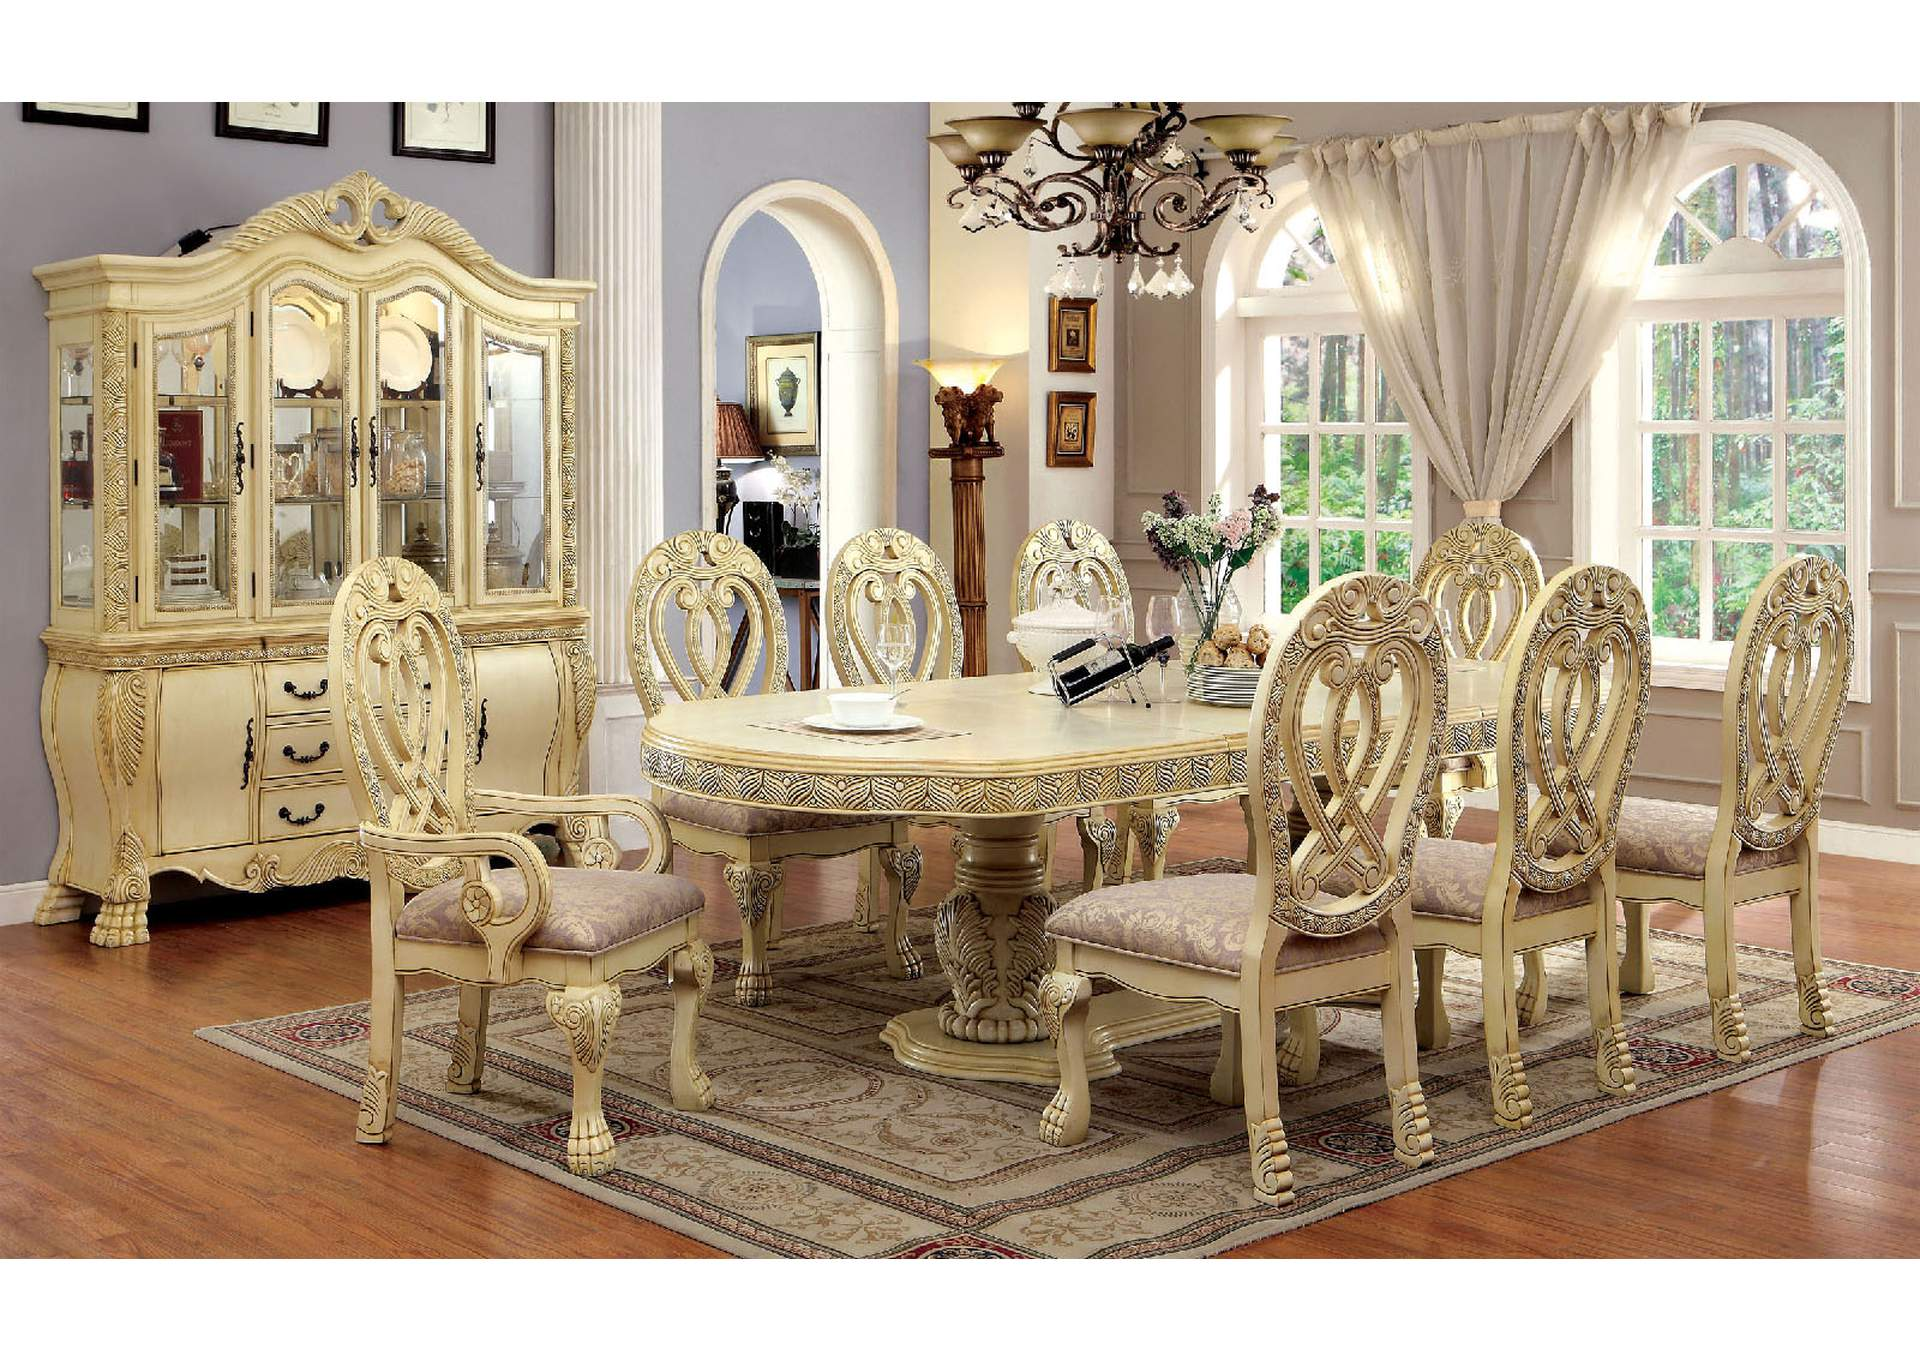 Wyndmere White Dining Table W 6 Side Chairs 2 Arm ChairsFurniture Of